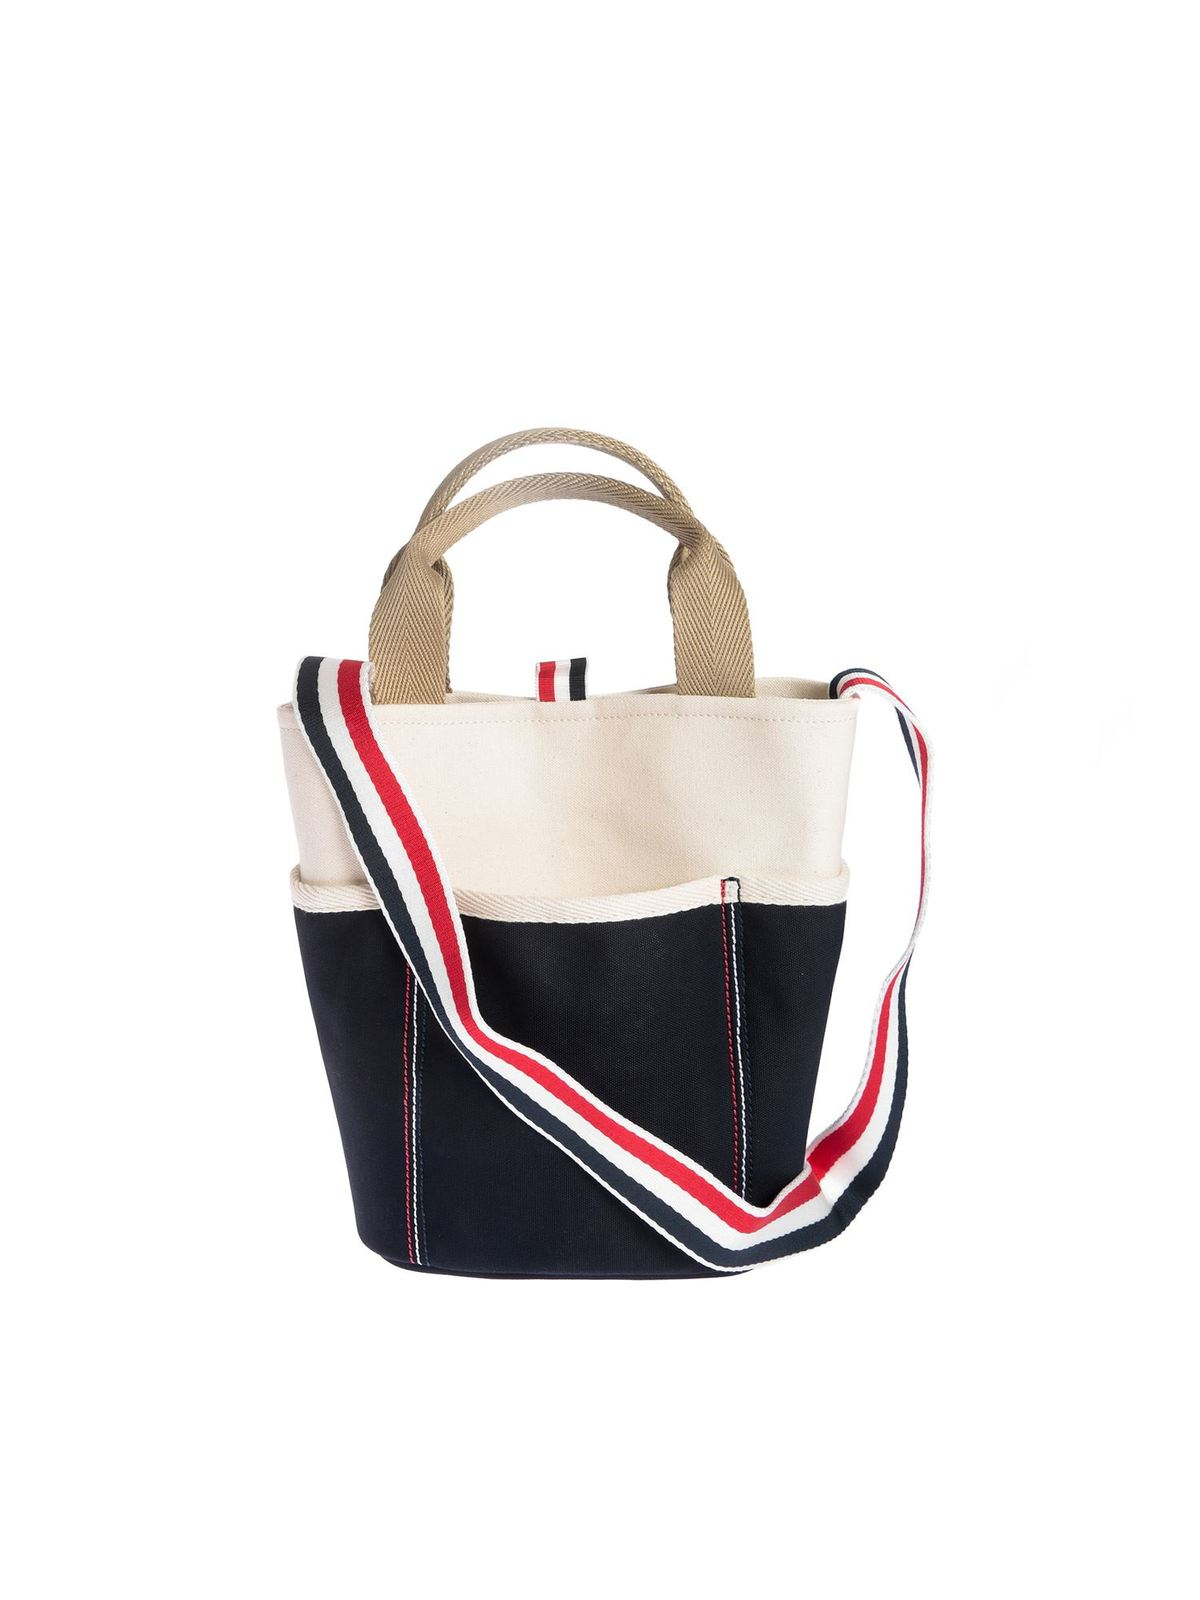 Thom Browne Large Bucket Bag In White And Blue In Cream